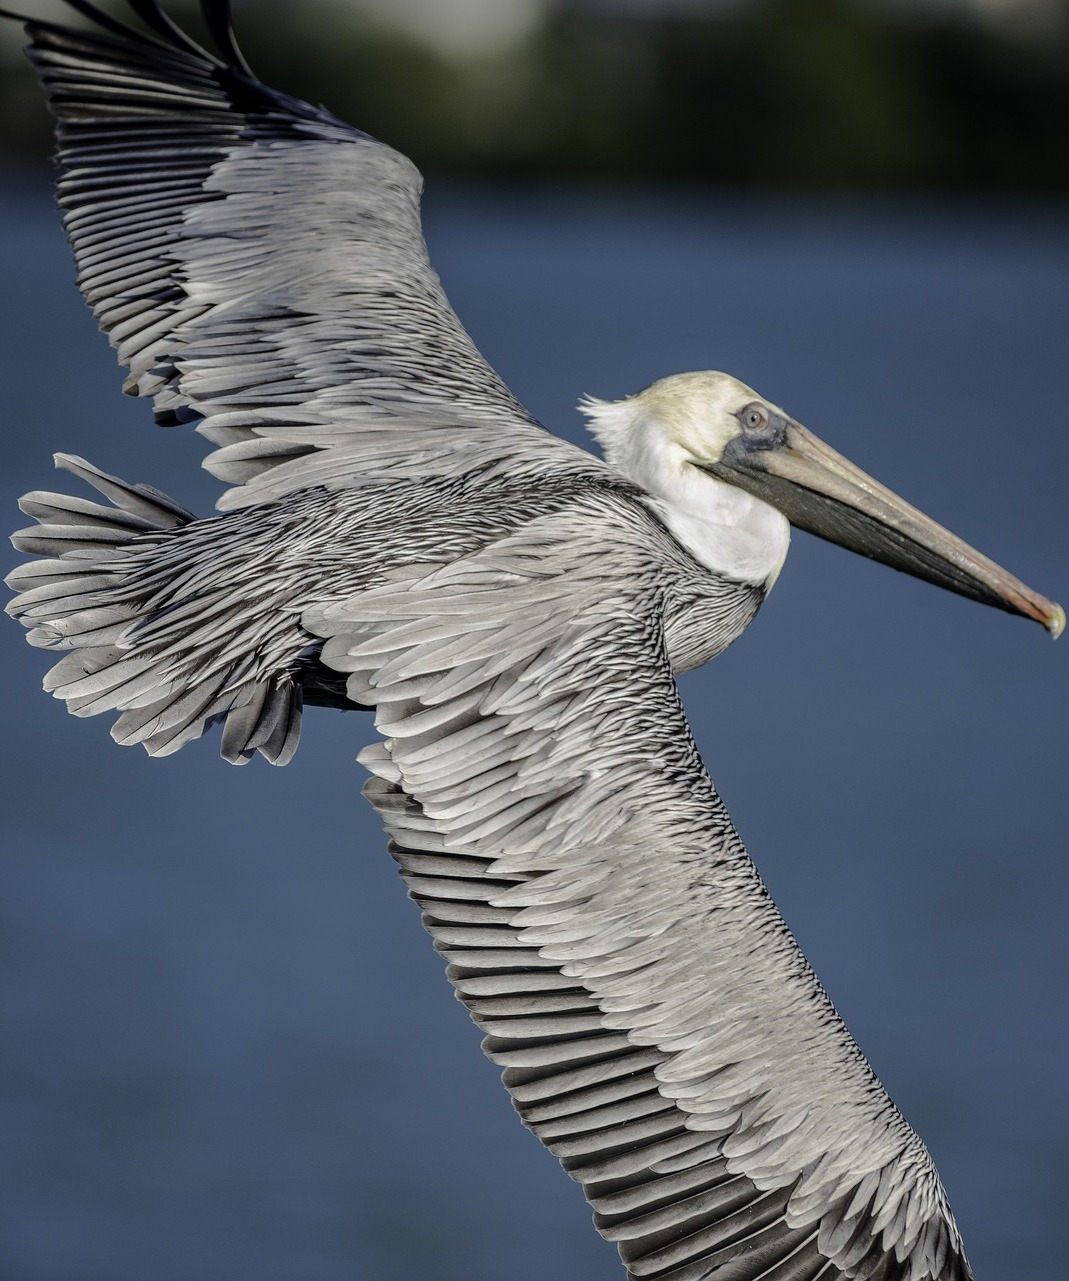 Amazing photo of a pelican in flight.